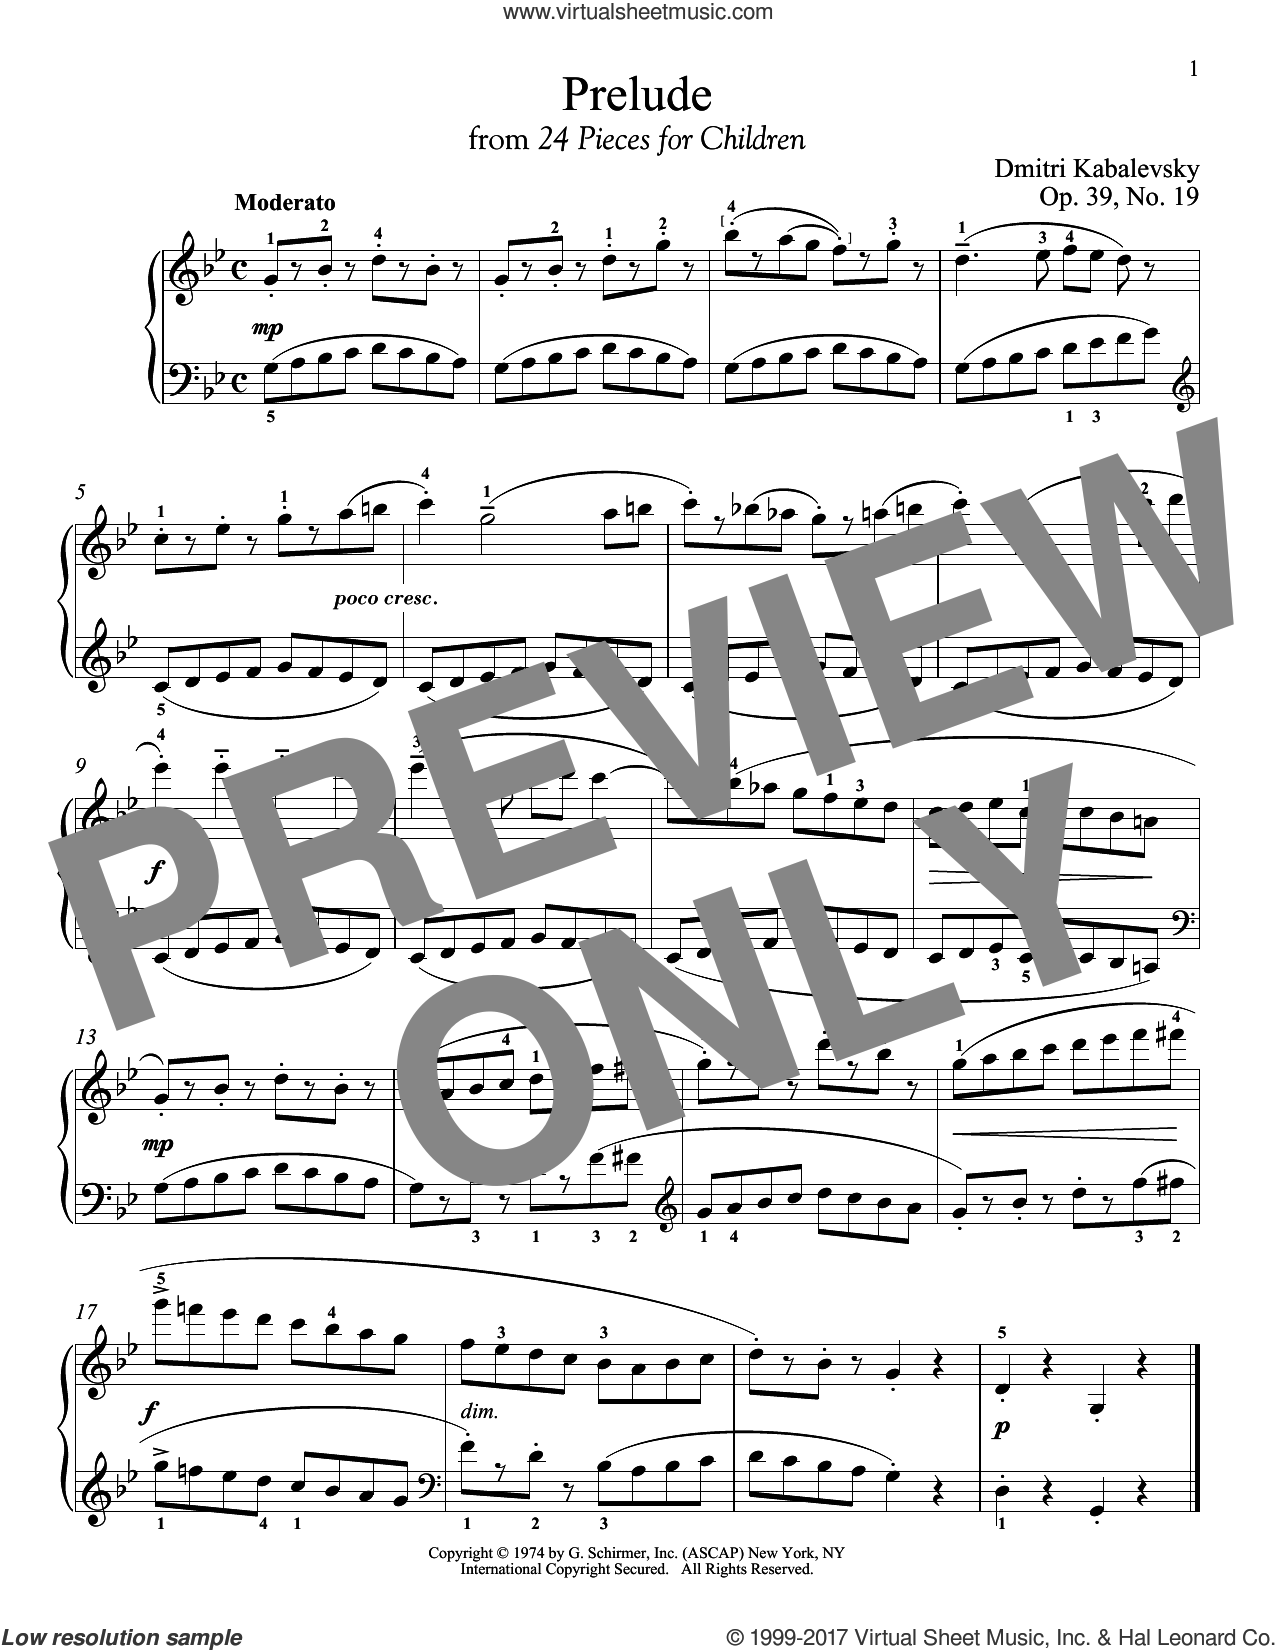 Prelude, Op. 39, No. 19 sheet music for piano solo by Dmitri Kabalevsky. Score Image Preview.